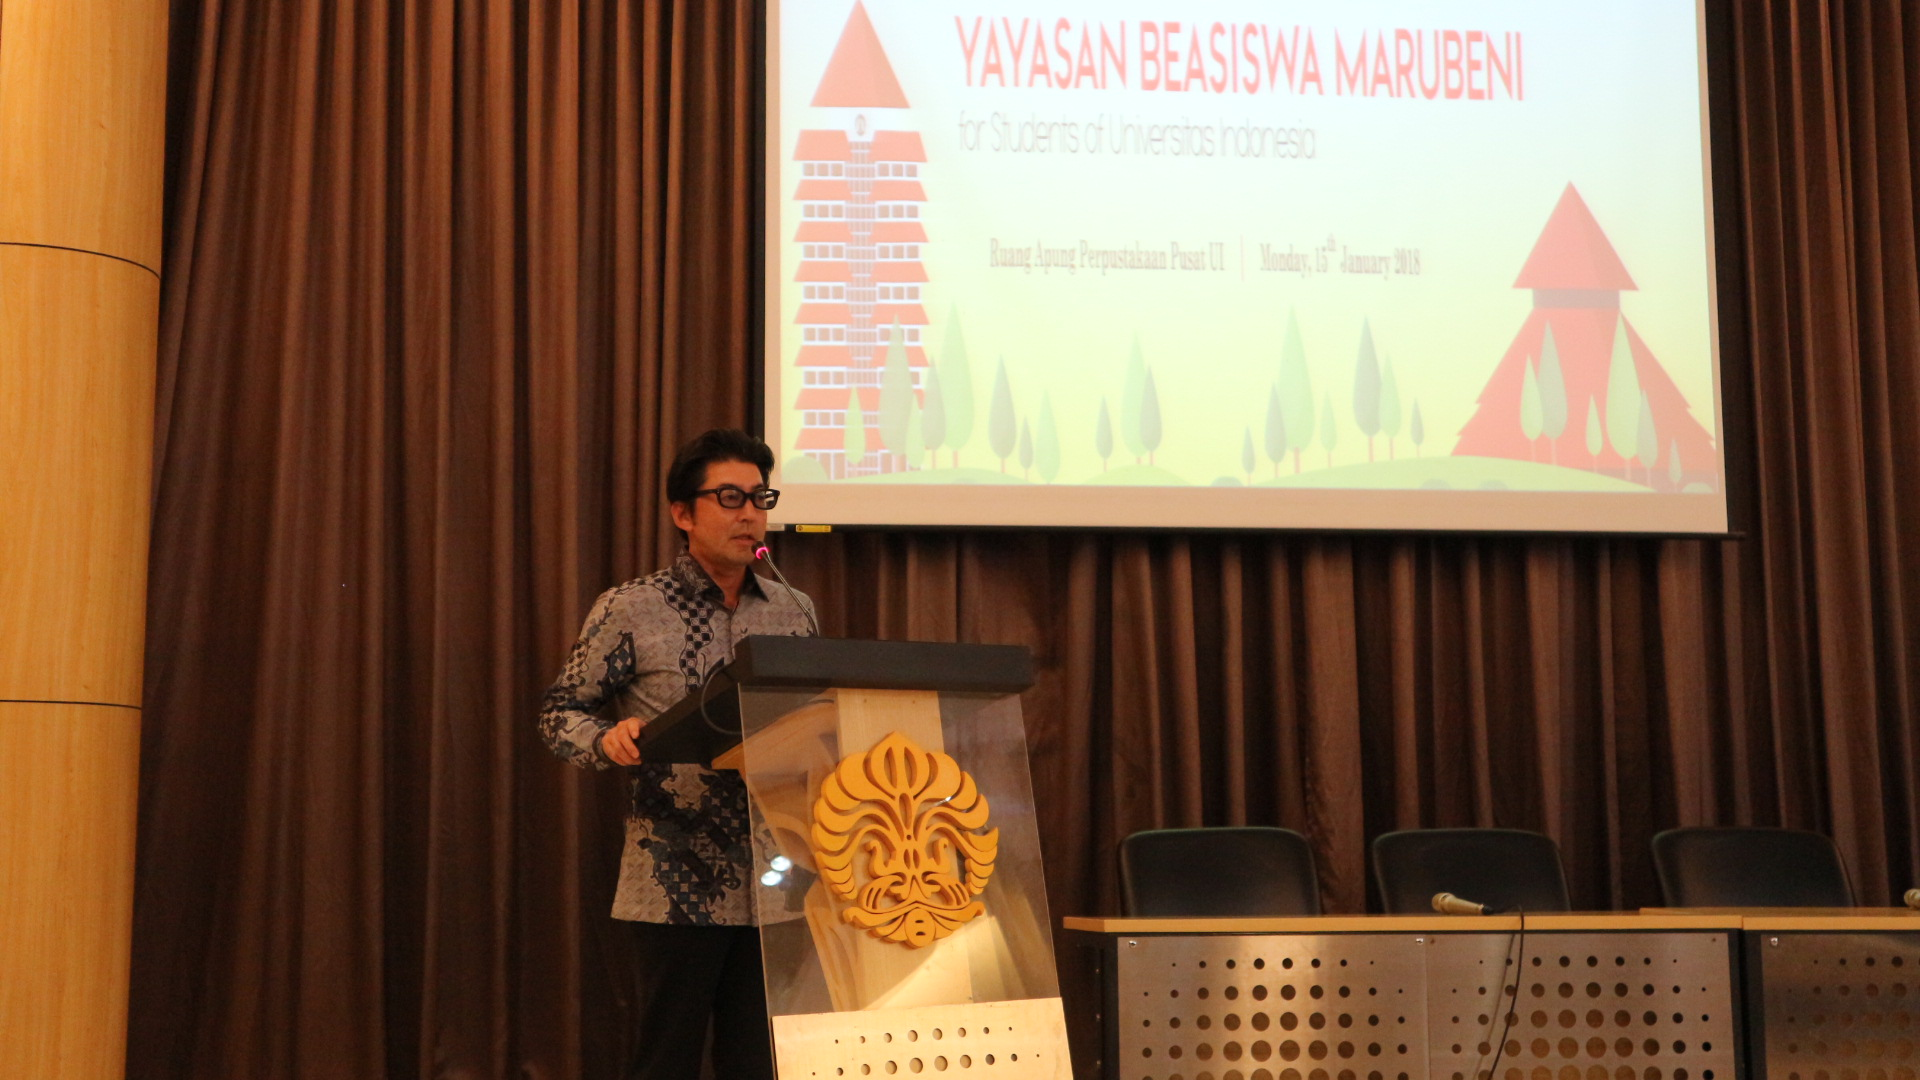 President Director of PT Marubeni Indonesia Mr. Tomofumi Fukuda give speech to audience at University of Indonesia